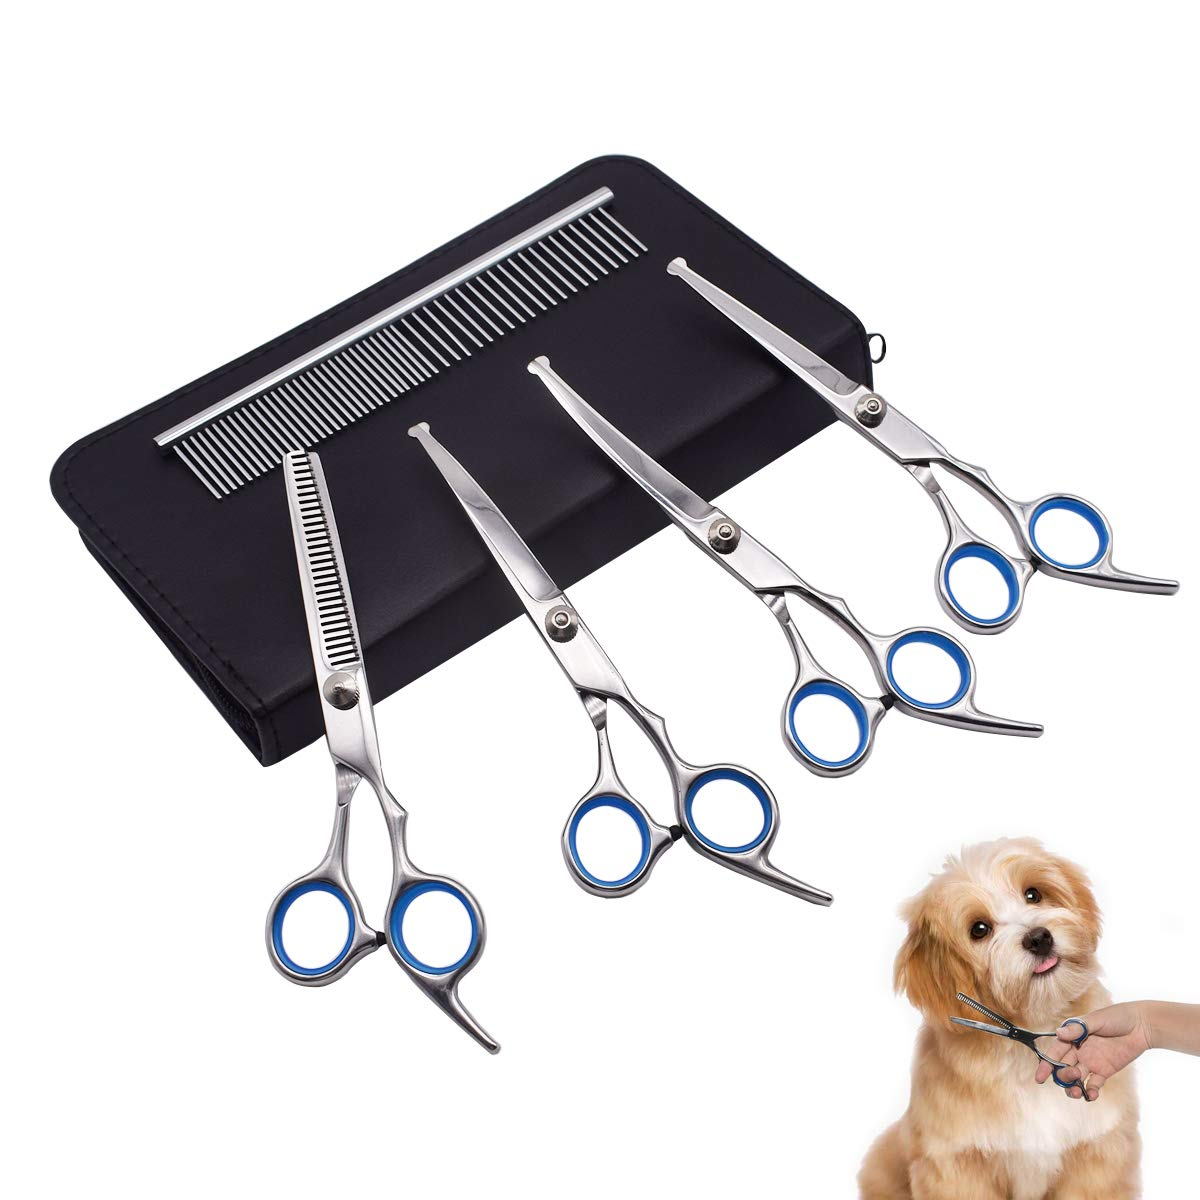 PetQoo Dog Grooming Scissors Set Professional Pet Grooming Scissors kit with Straight for Curved Scissors Suitable for Large and Small Dogs or Cat or Other Pets